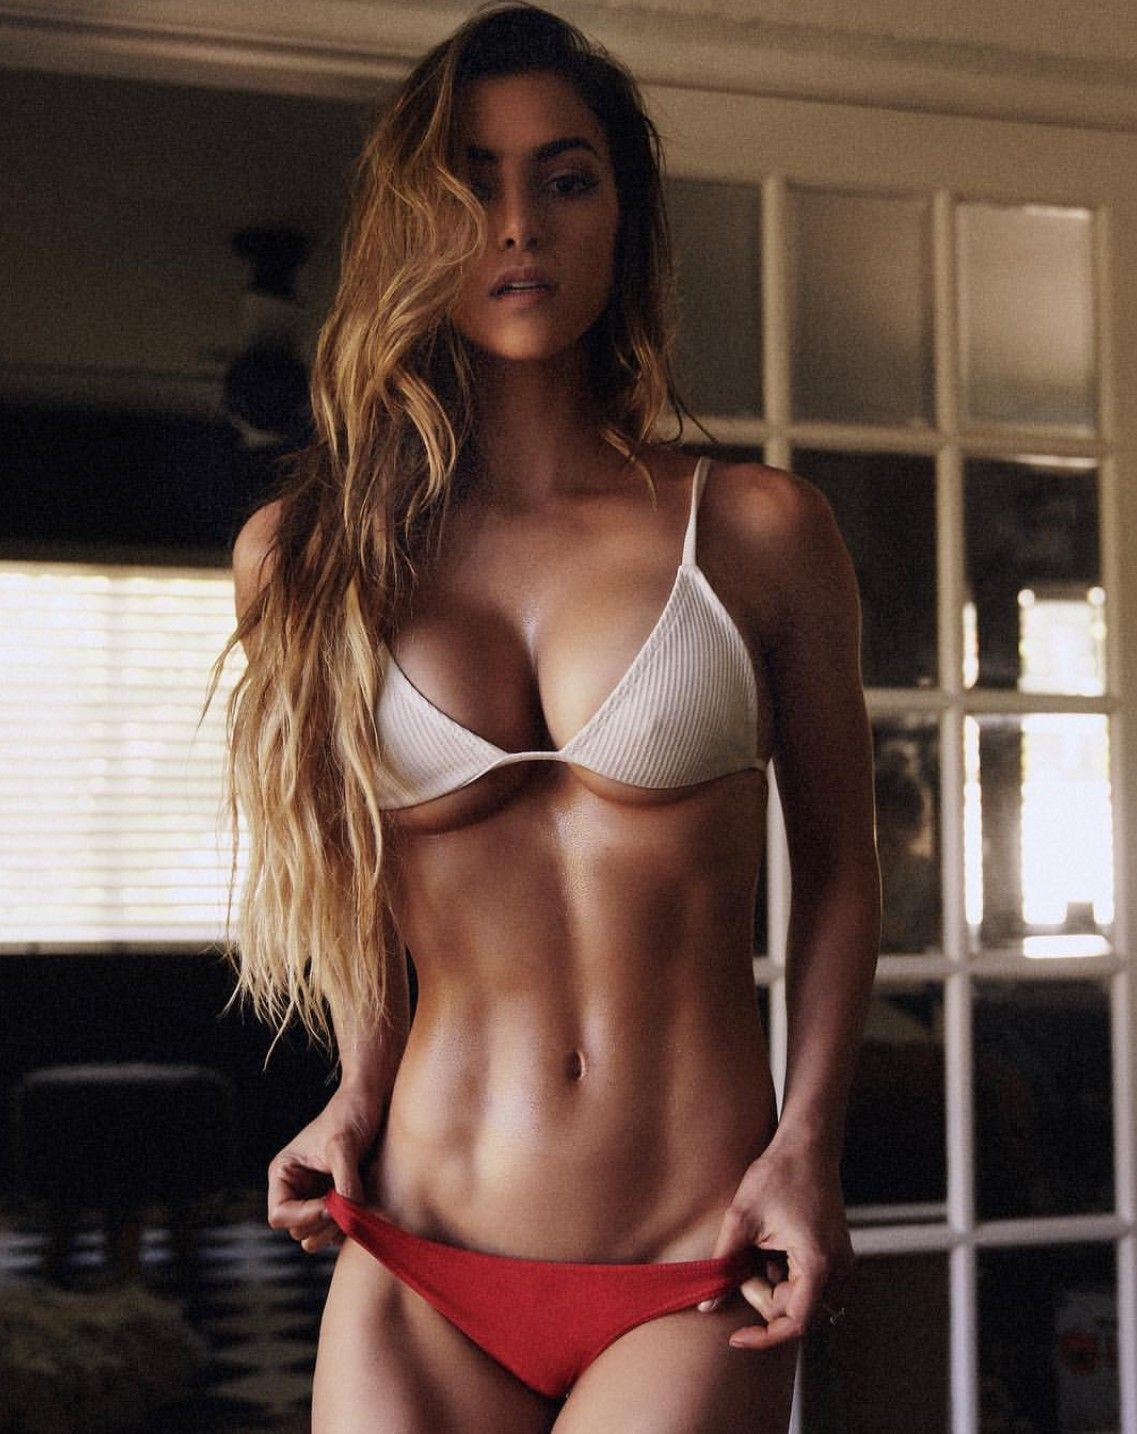 Anllela Sagra | Anllela Sagra - Too Hot | Pinterest